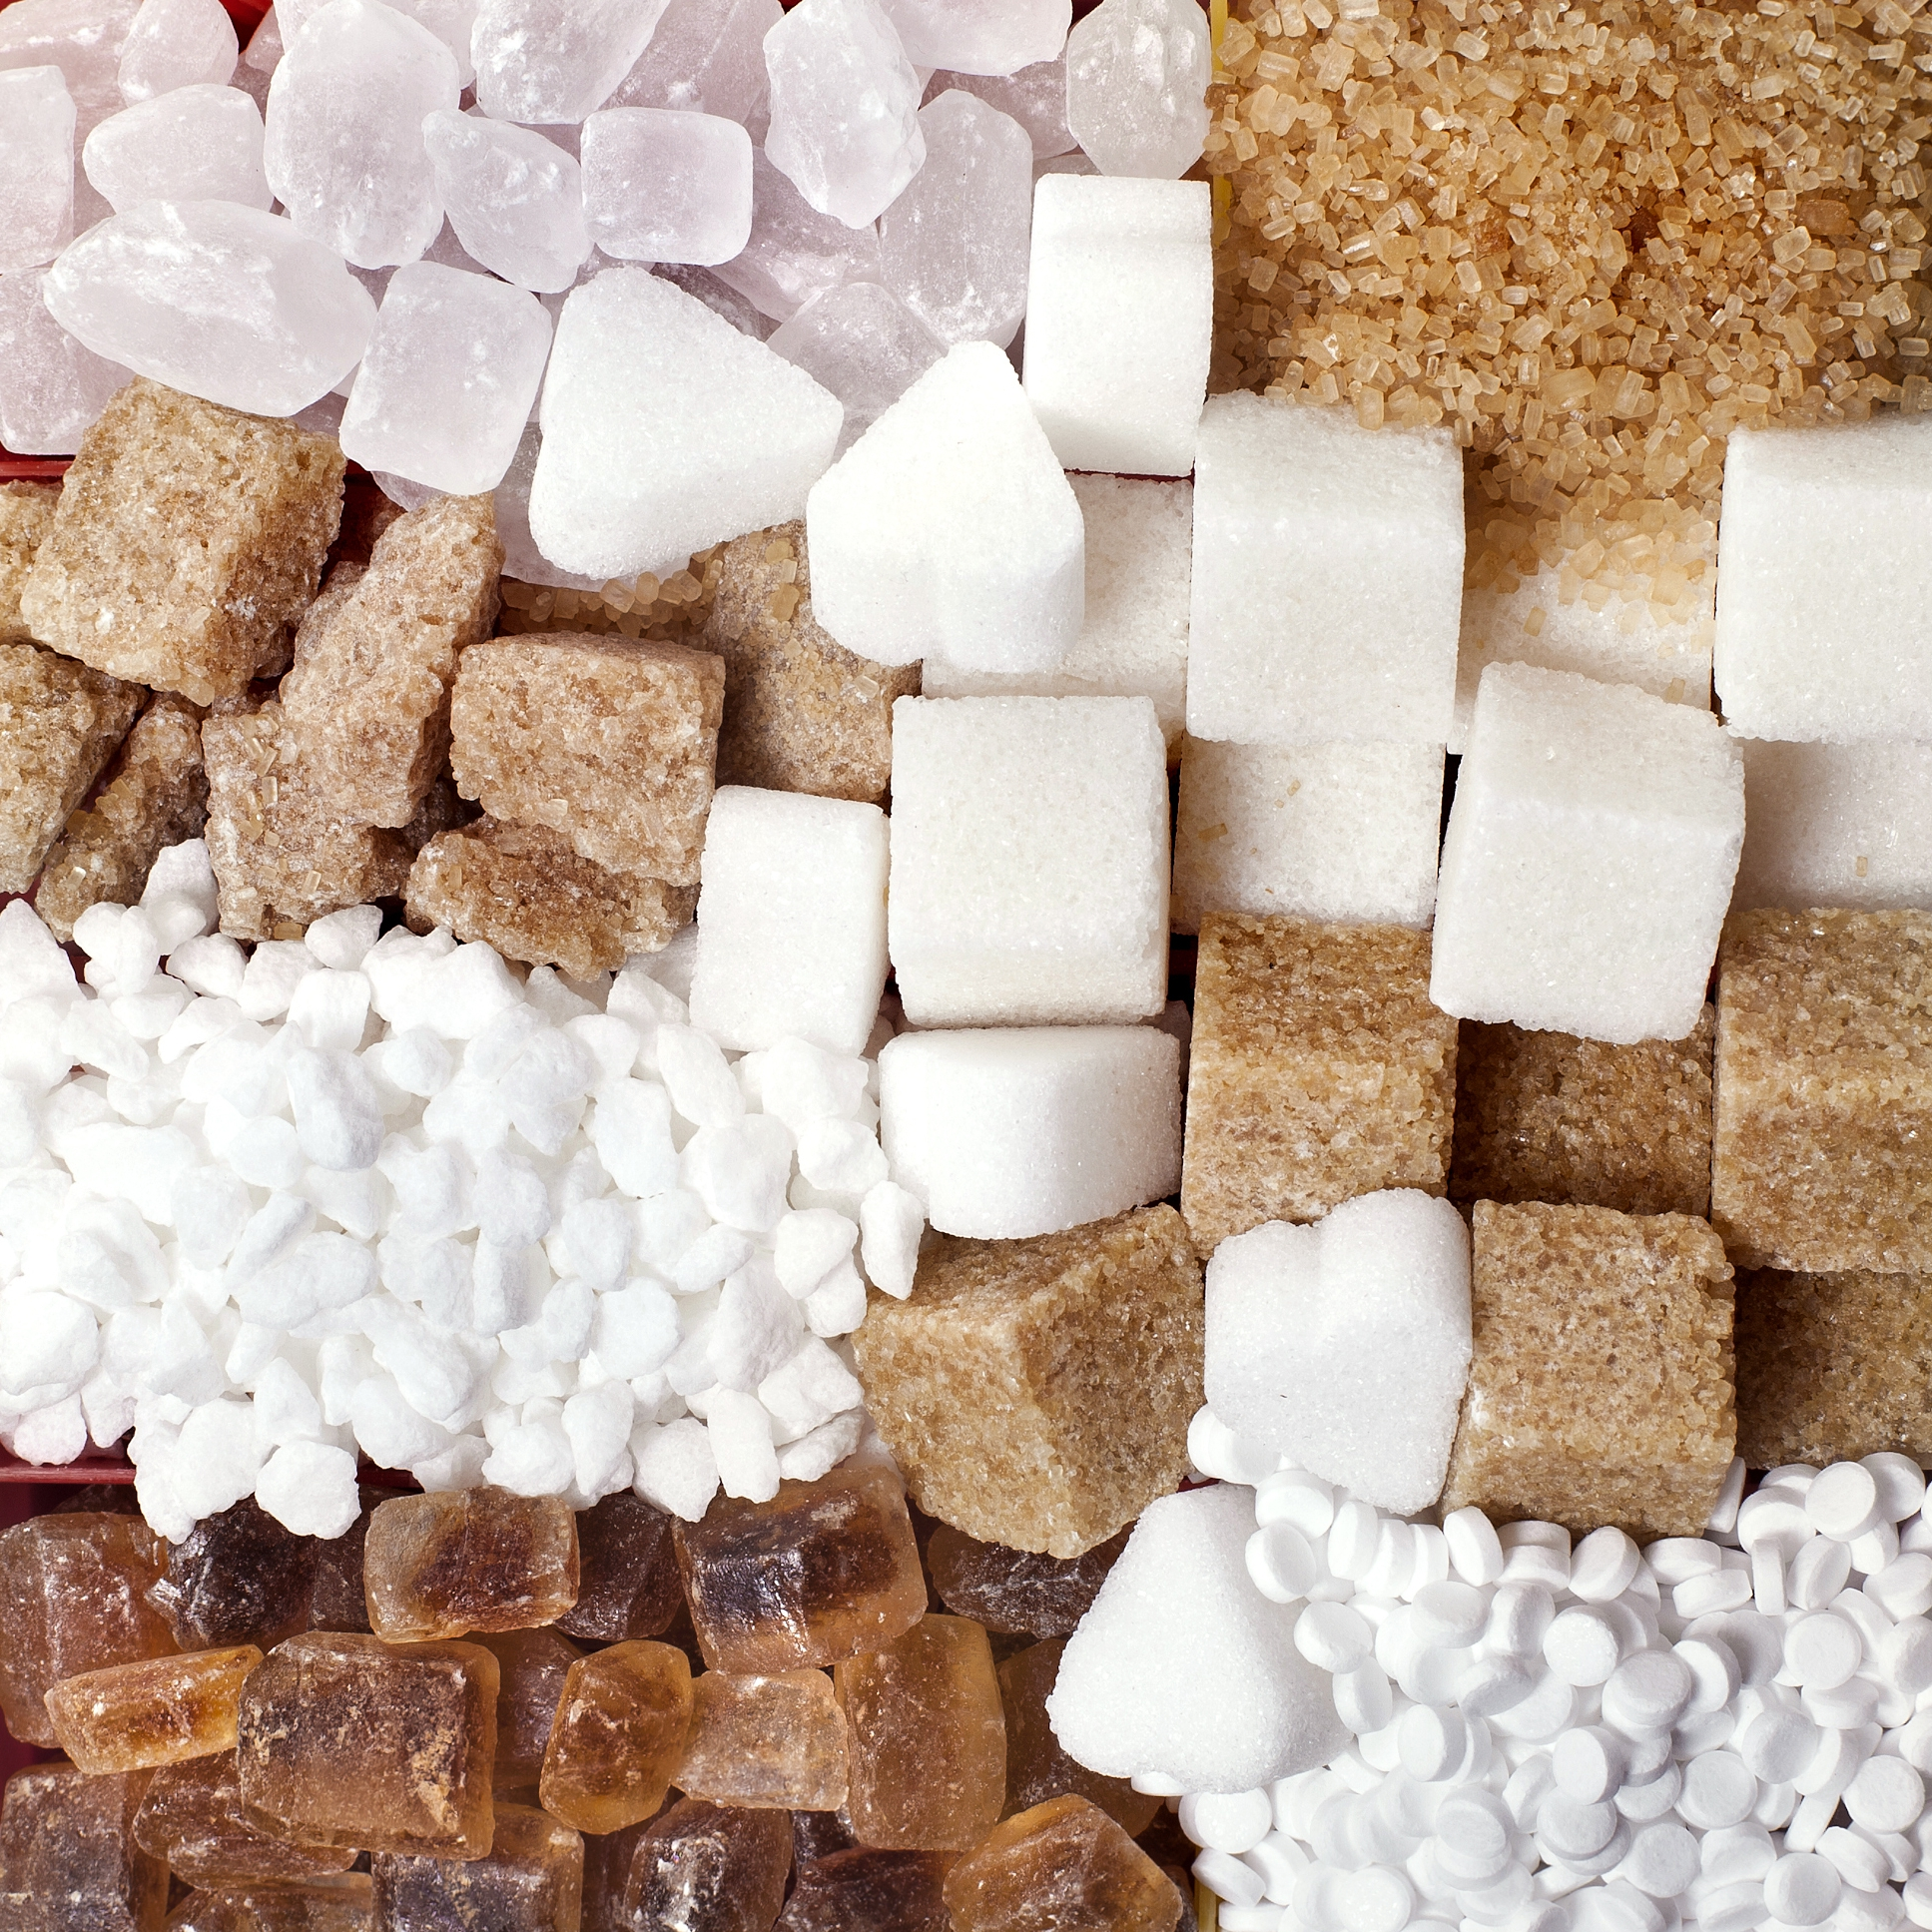 Closeup of sugar cubes and crystals with sweeteners